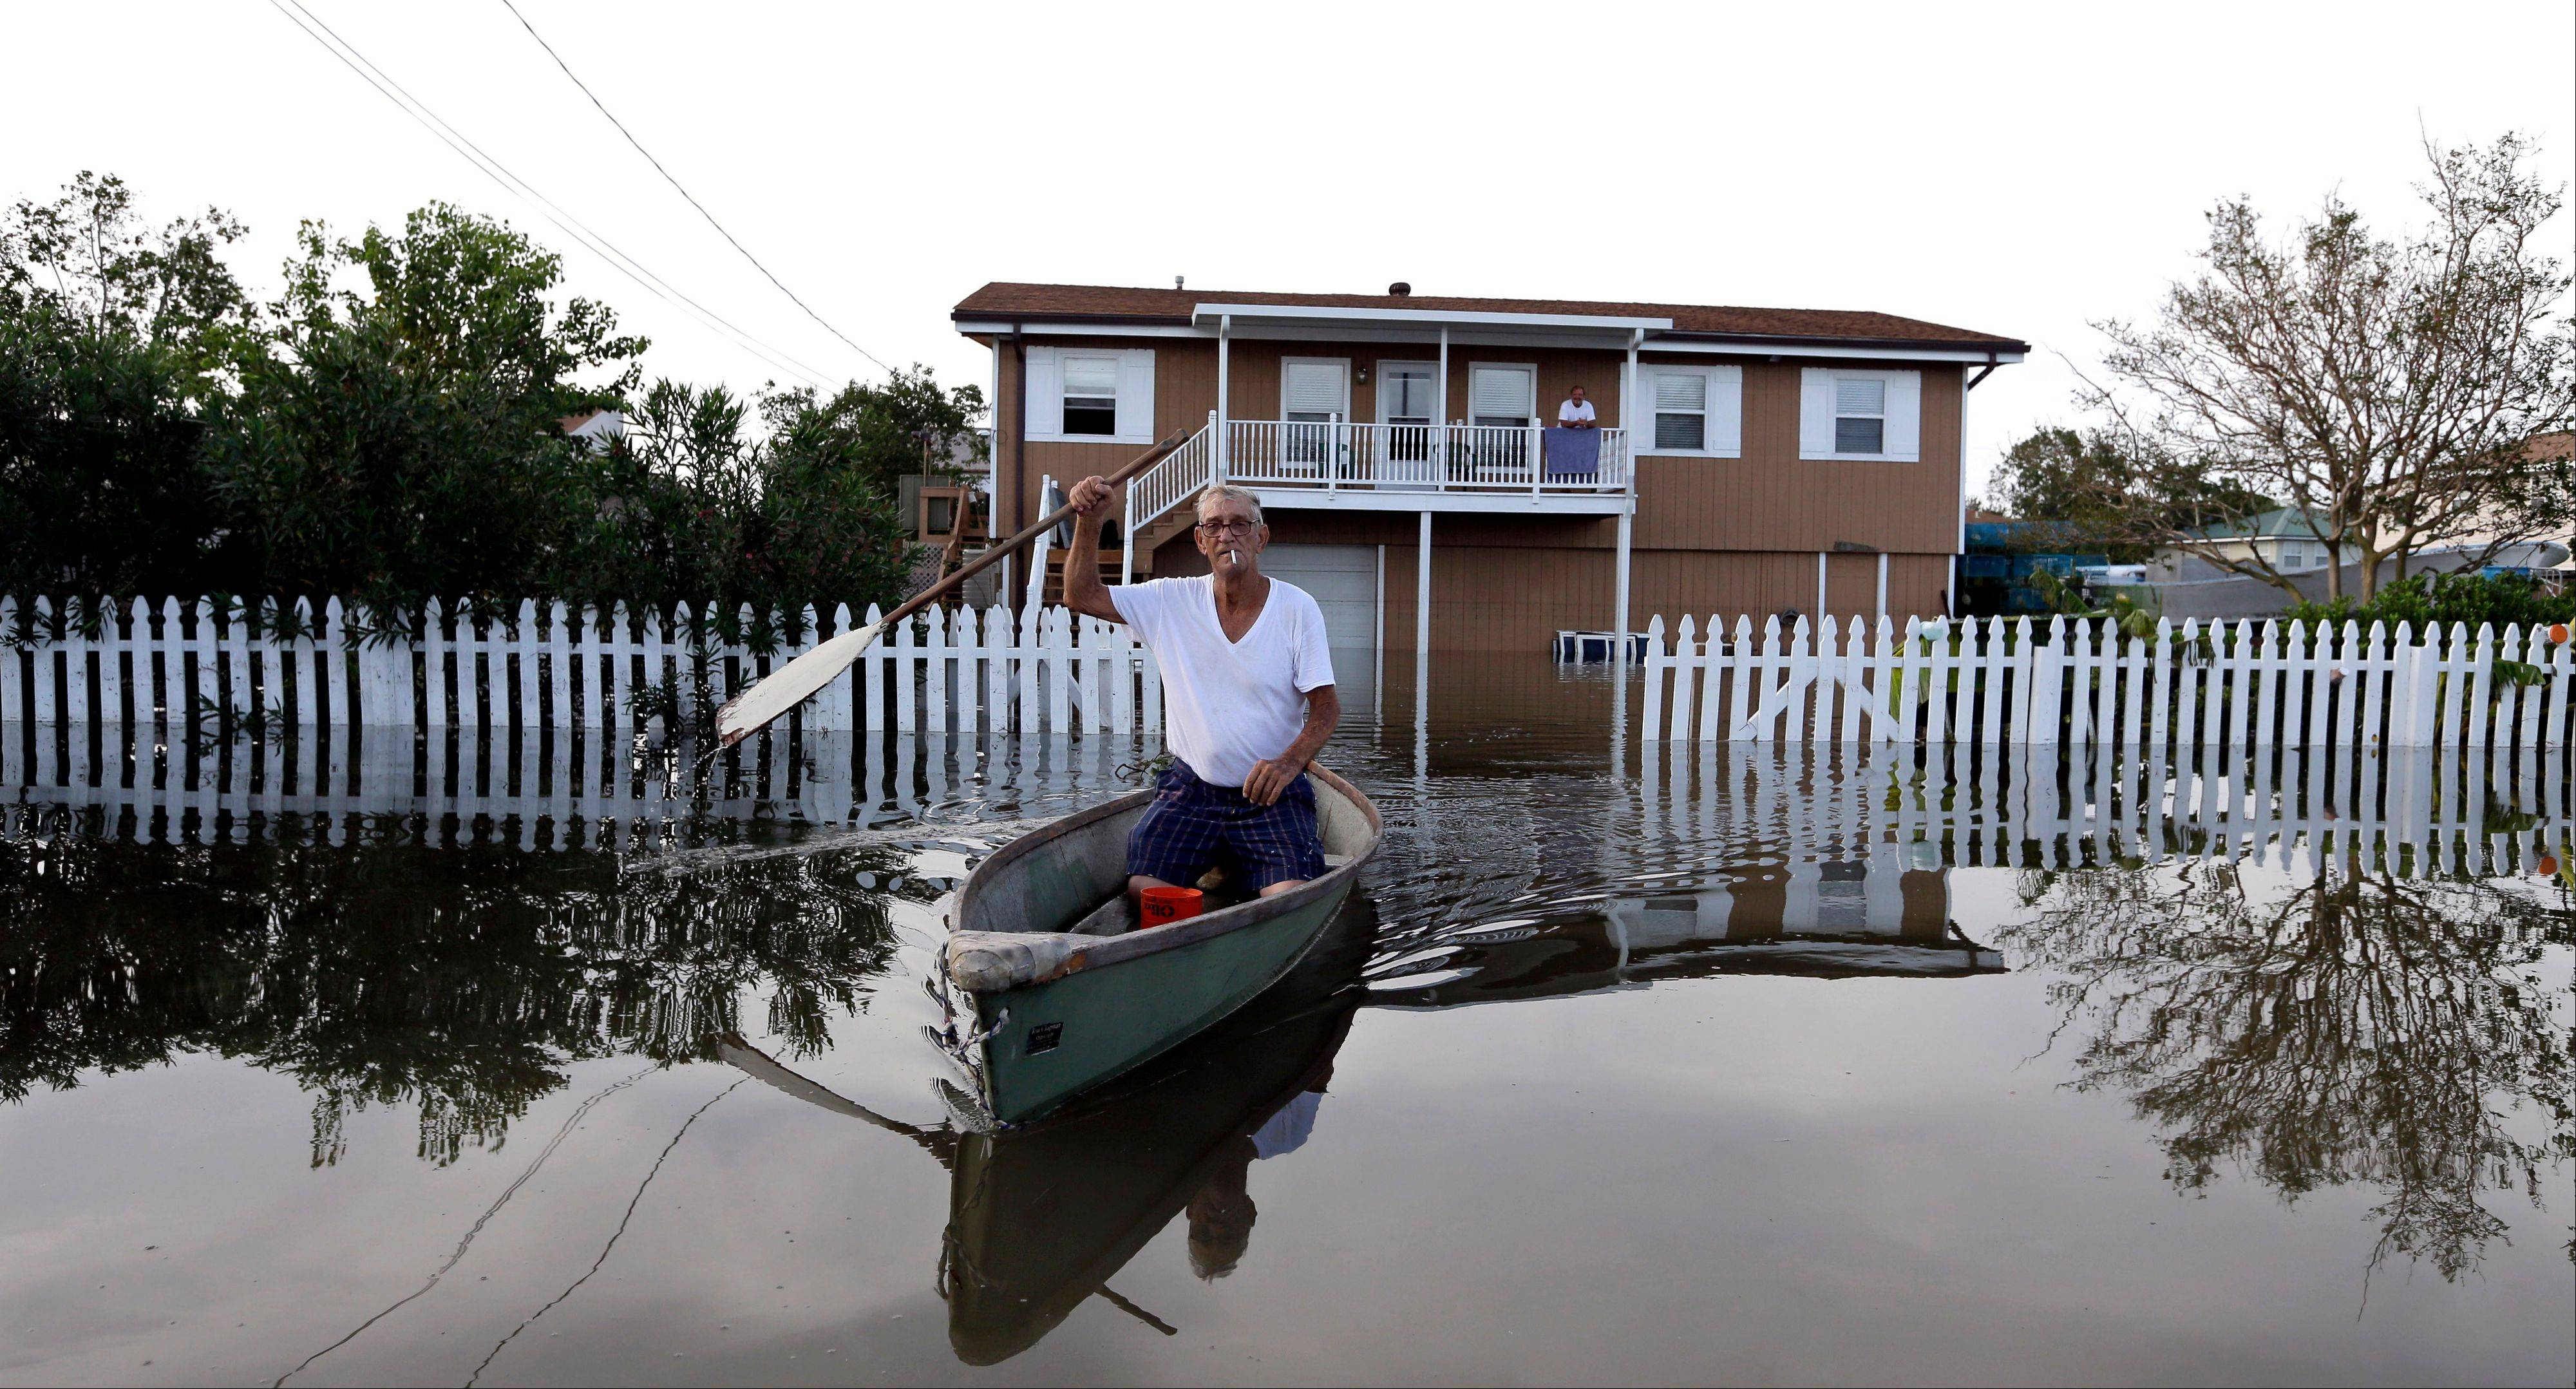 Anthony Segrave rides in his boat as he leaves his son's flooded home in the aftermath of Hurricane Isaac in Slidell, La., Friday, Aug. 31, 2012. Isaac is now a tropical depression and the center was on track to cross Arkansas on Friday and southern Missouri on Friday night, spreading rain as it goes.